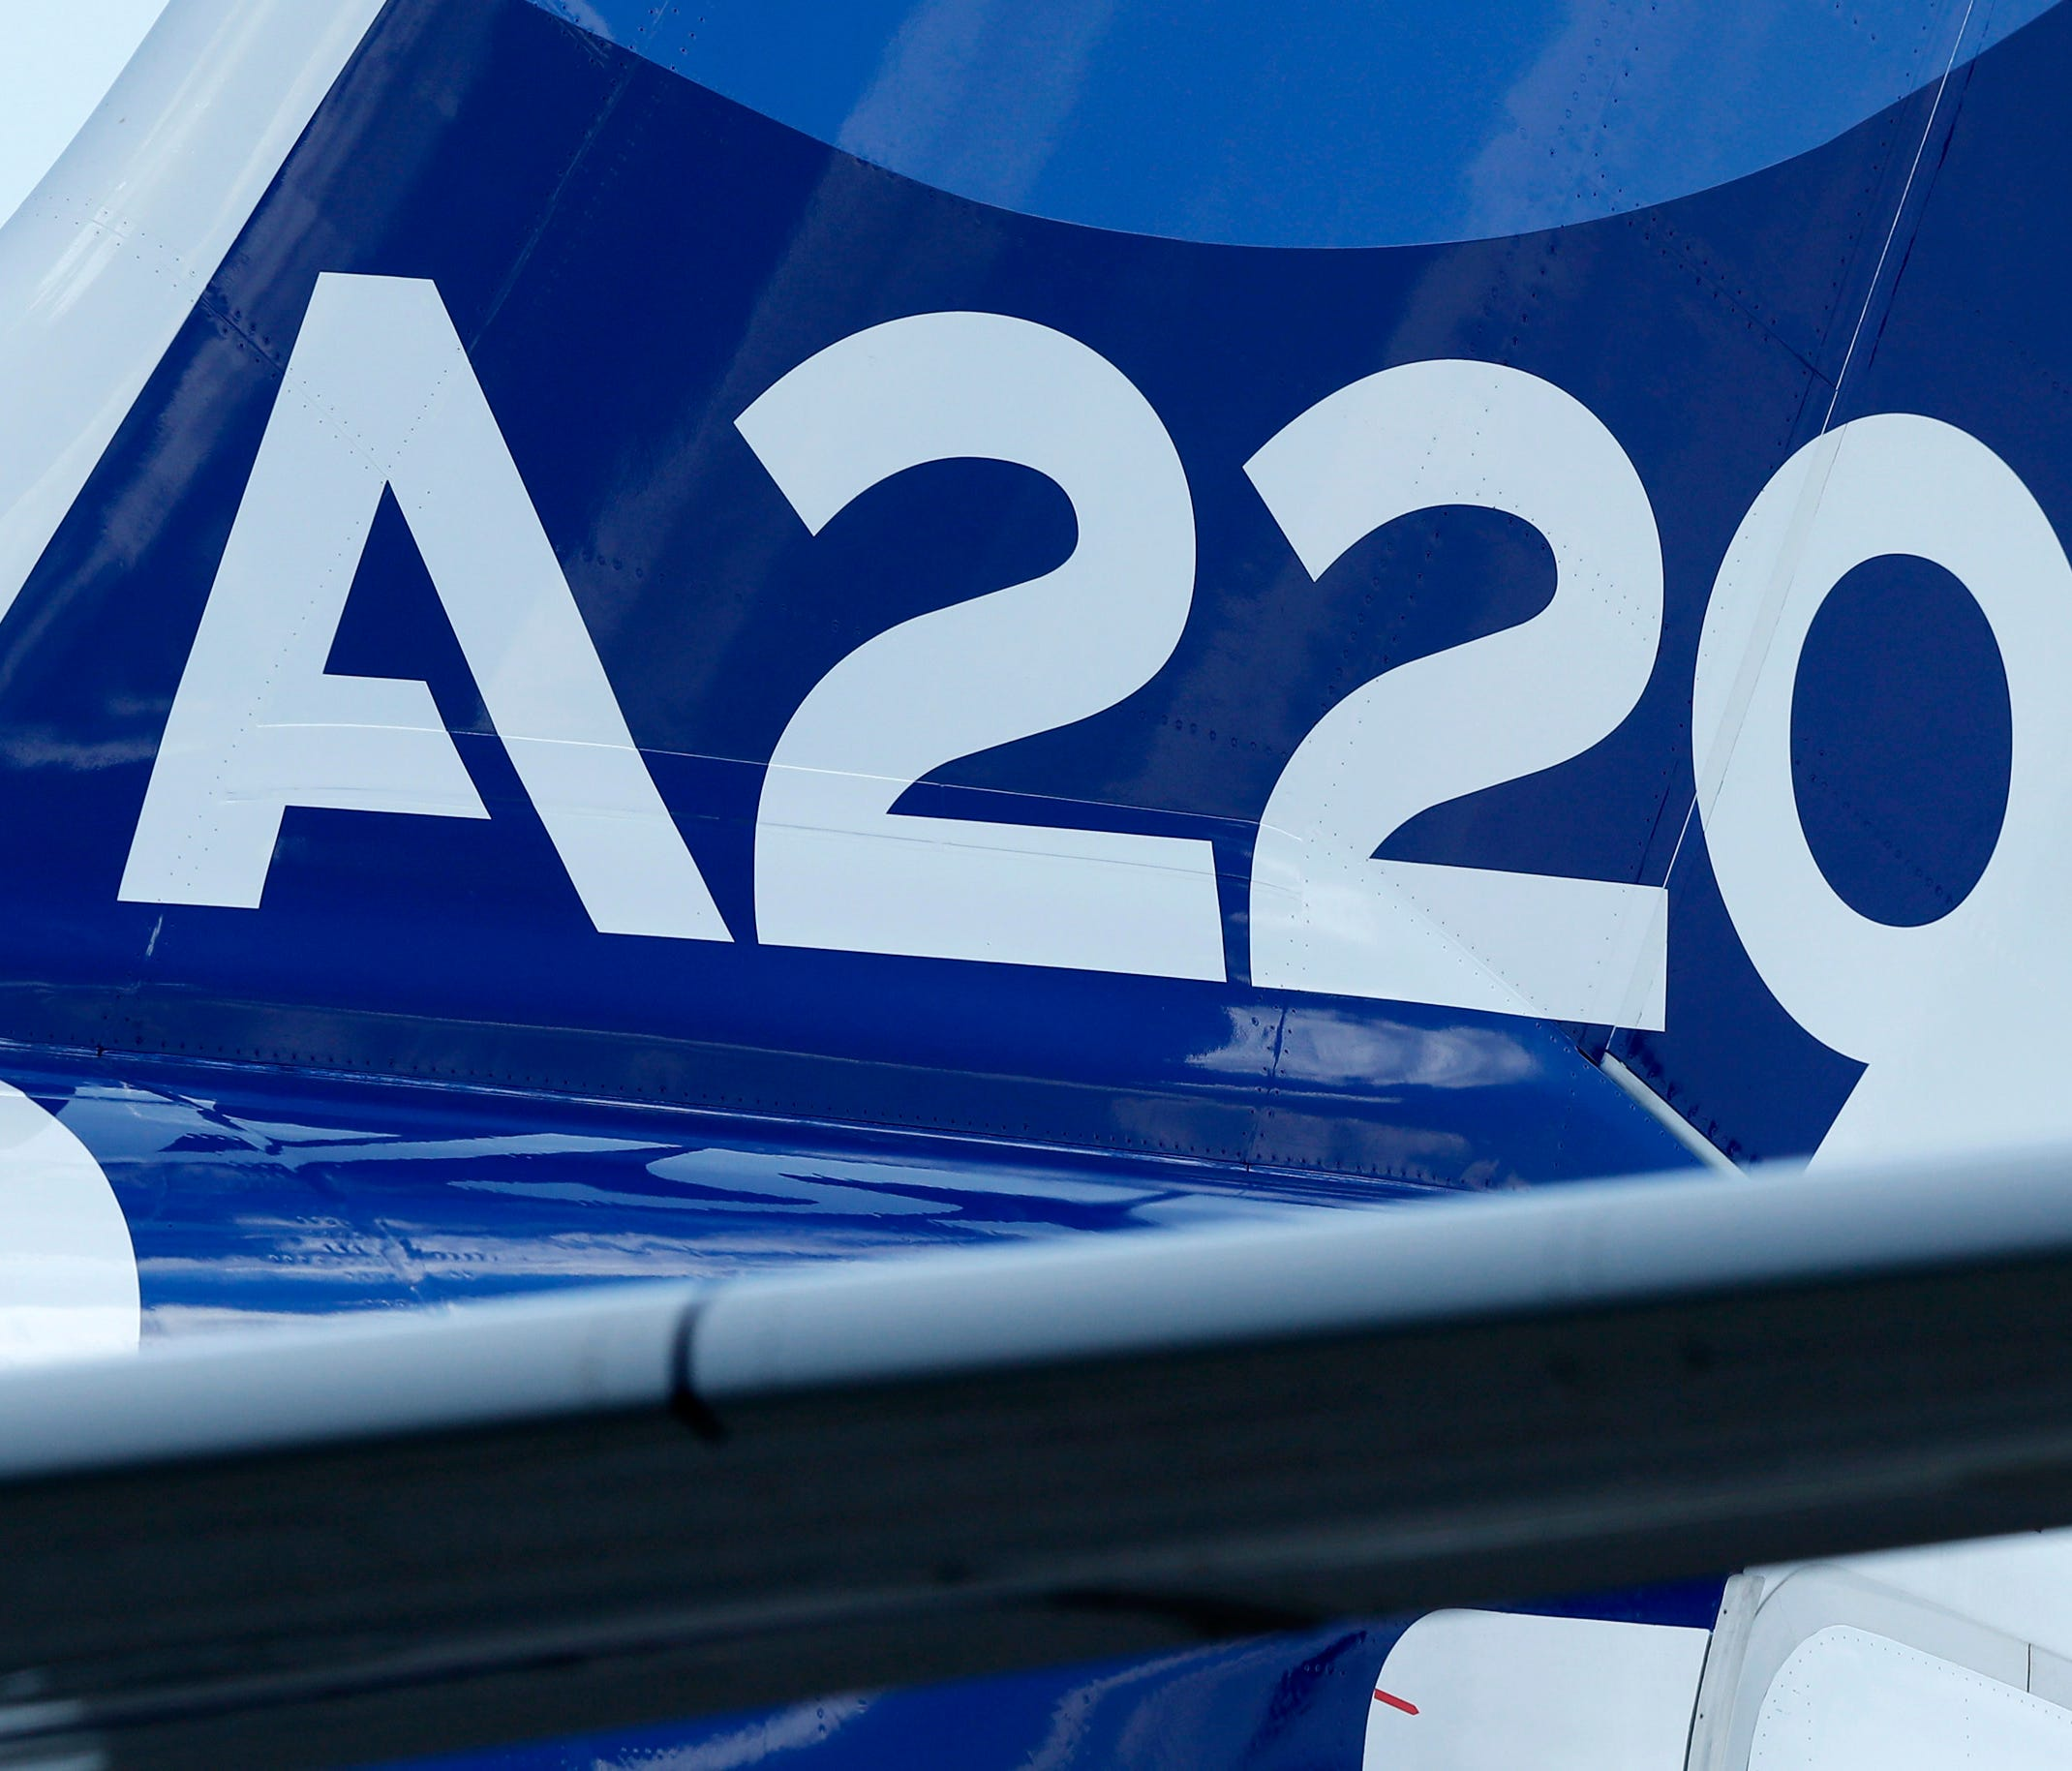 The tail rudder of a new Airbus A220-300 aircraft during the presentation of the new Airbus A220-300 at Airbus's delivery center in Toulouse, France, on July 10 July 2018.